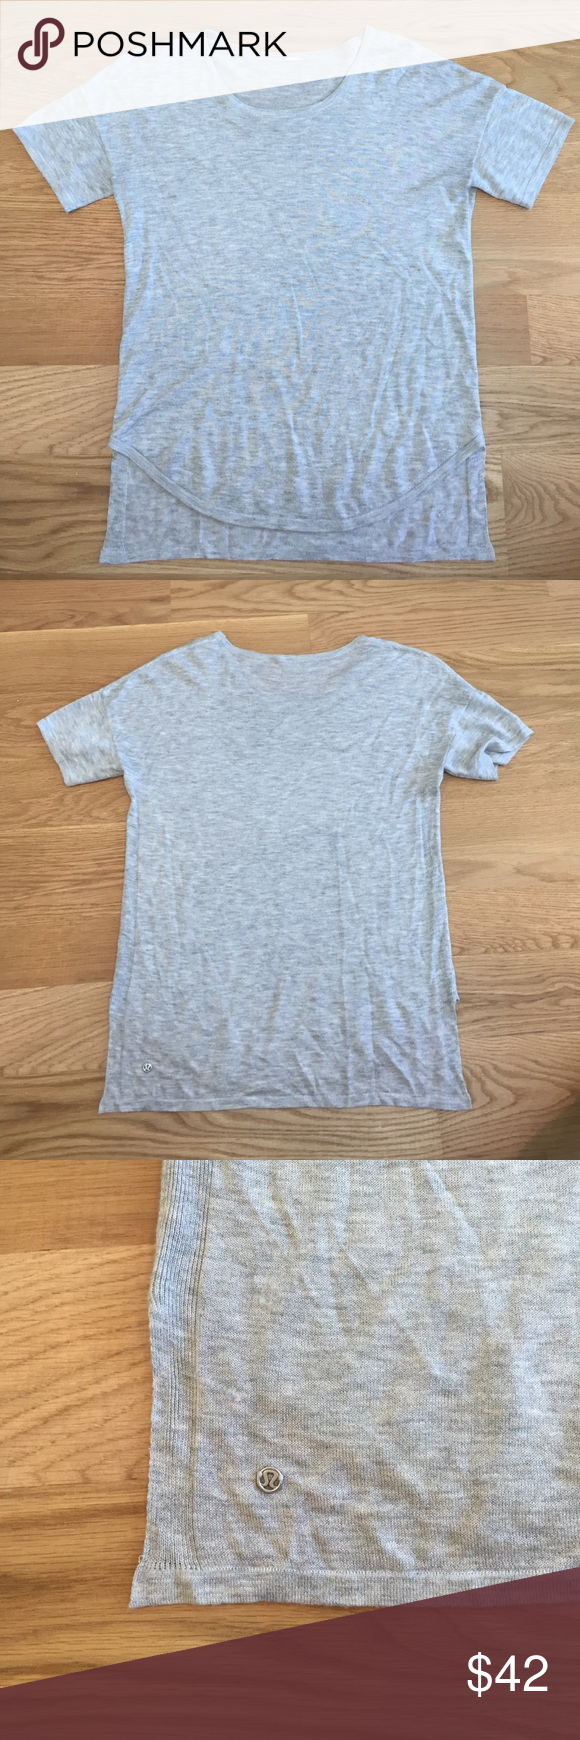 {lululemon} tee shirt Super soft! Made of a very light sweater material. Hi/low hem is very flattering on! Rare style. Note: there is some pilling on the right bottom hem. See last picture. Not noticeable when wearing. NO TRADES. I only consider offers made using the offer button. lululemon athletica Tops Tees - Short Sleeve